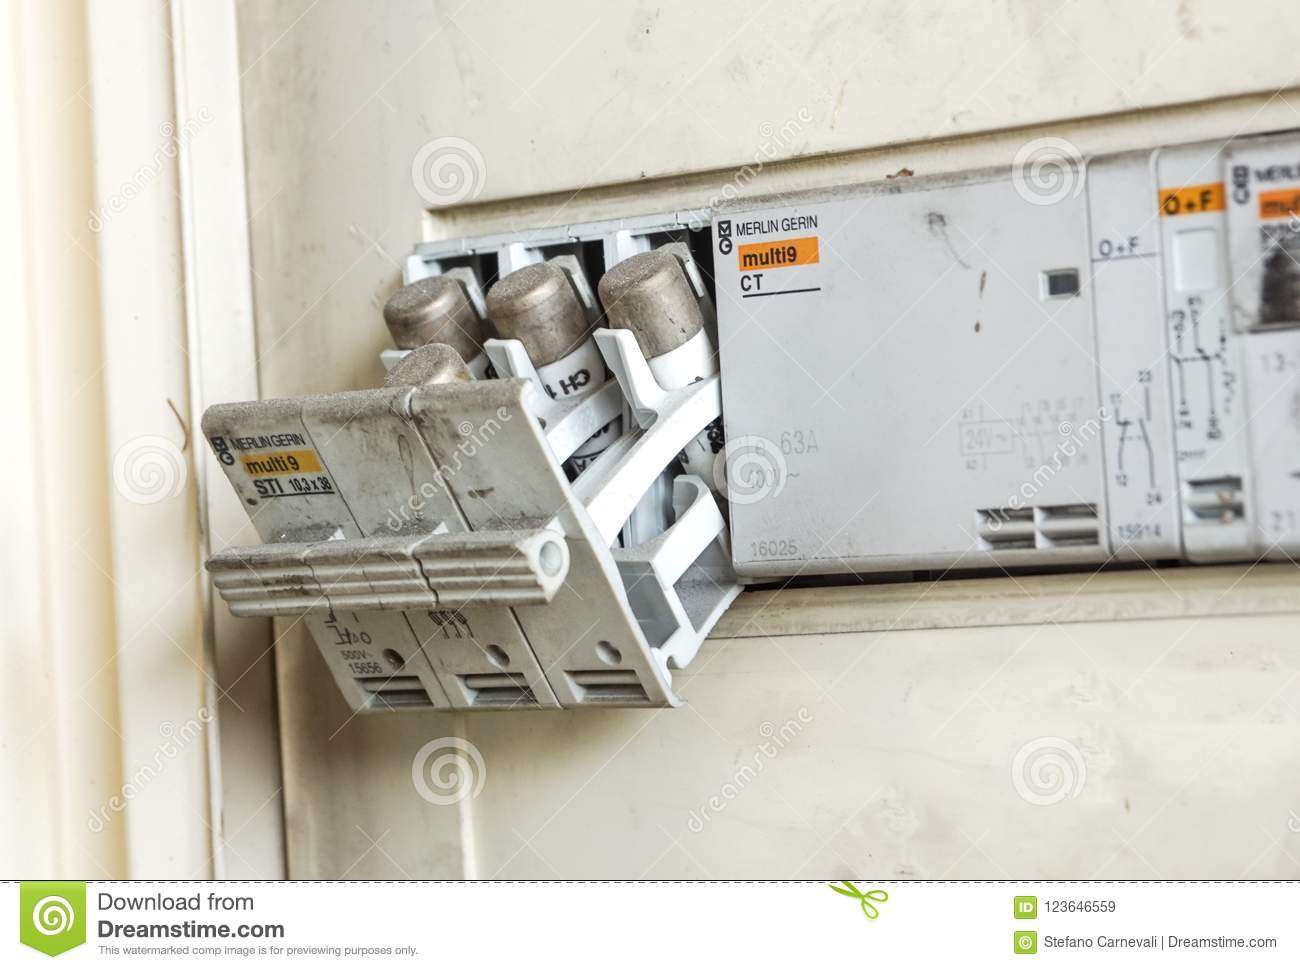 hight resolution of milan italy june 30 2018 electricity main center and old electrical fuse box with porcelain fuses